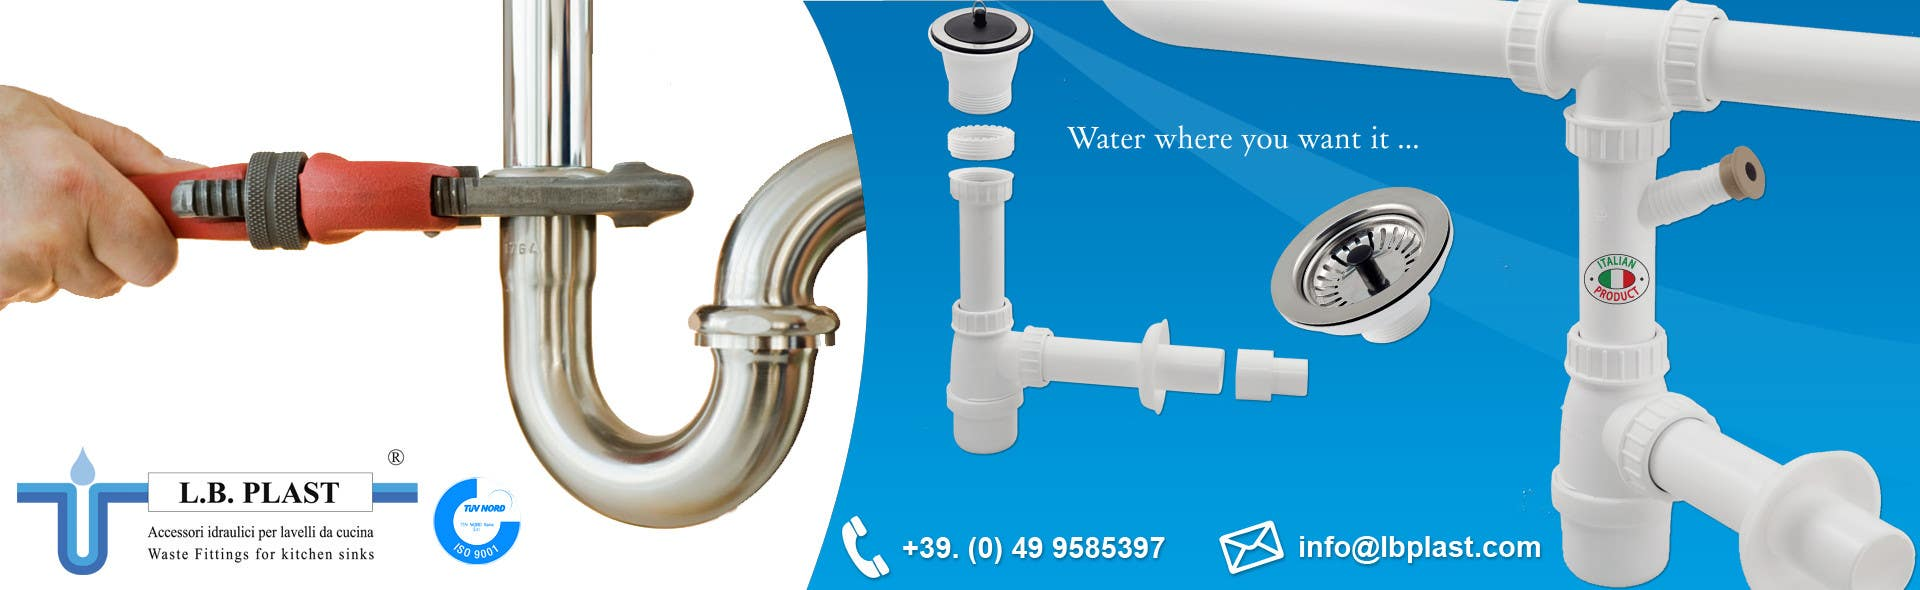 Contest Entry #18 for Poster Design for a Distributor of Plumbing products